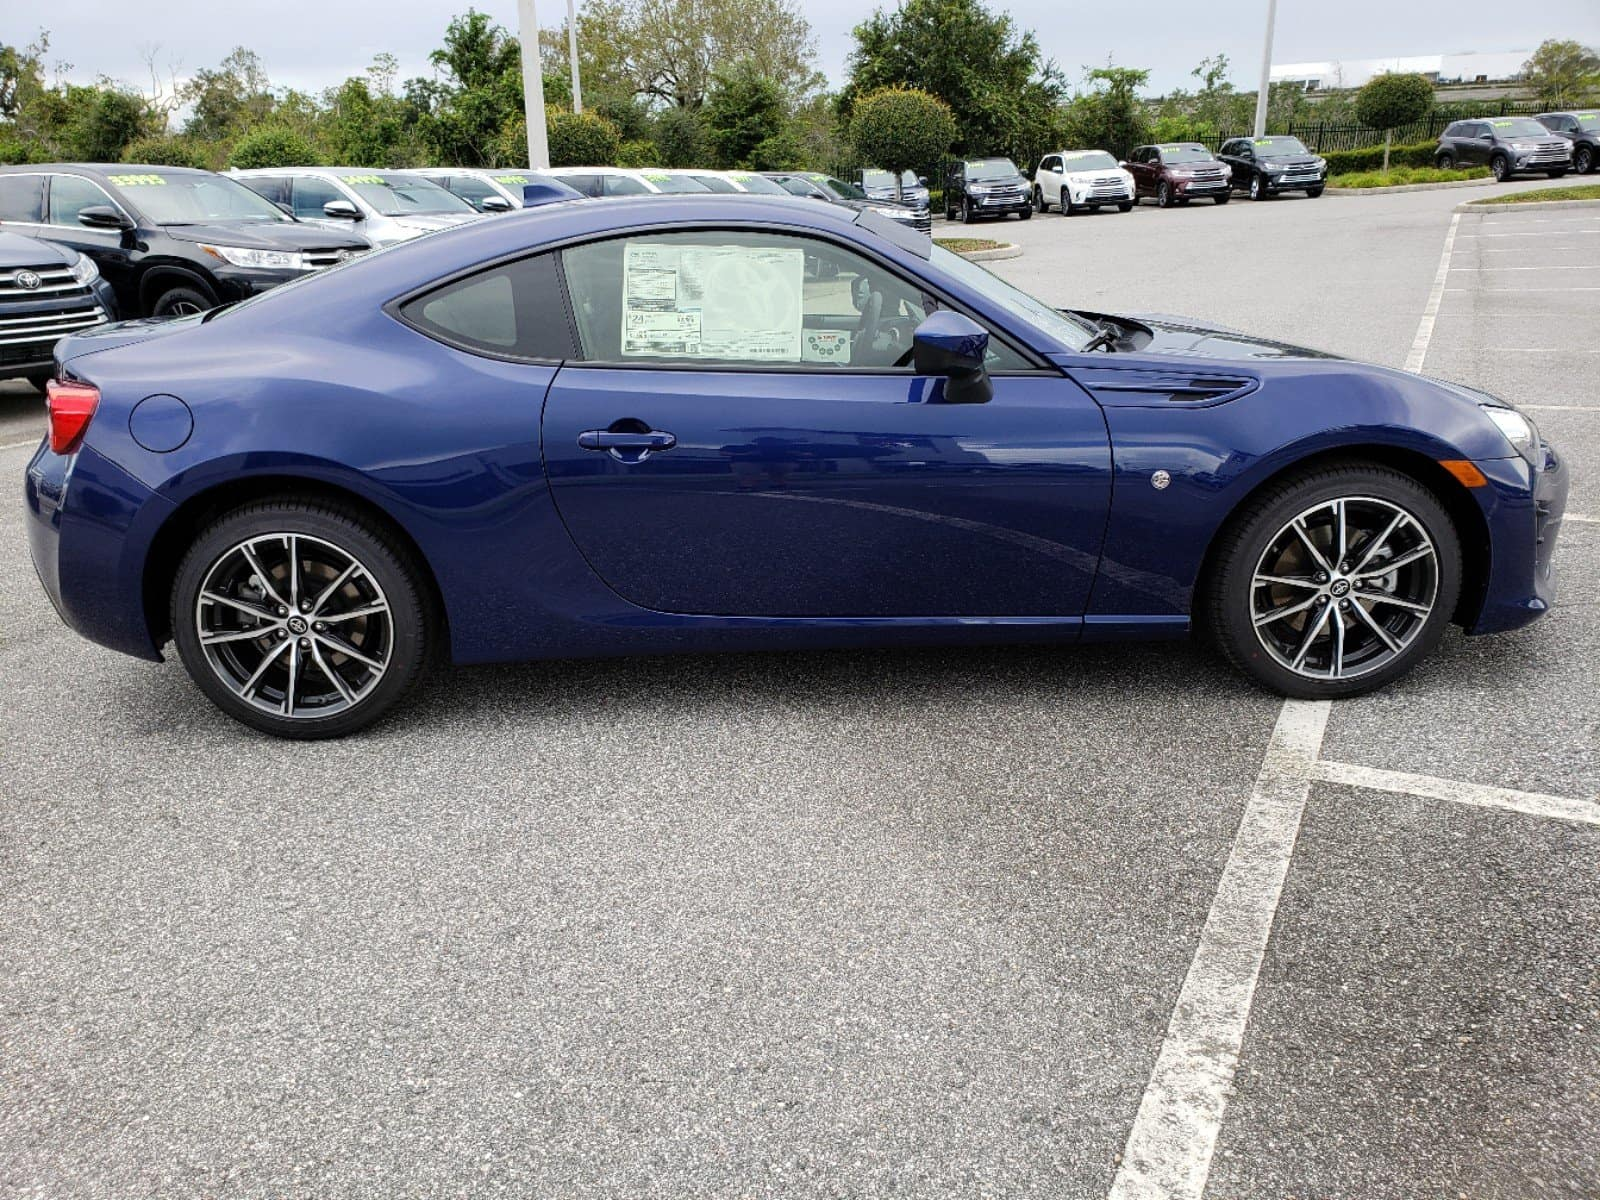 Test drive the new Toyota 86.